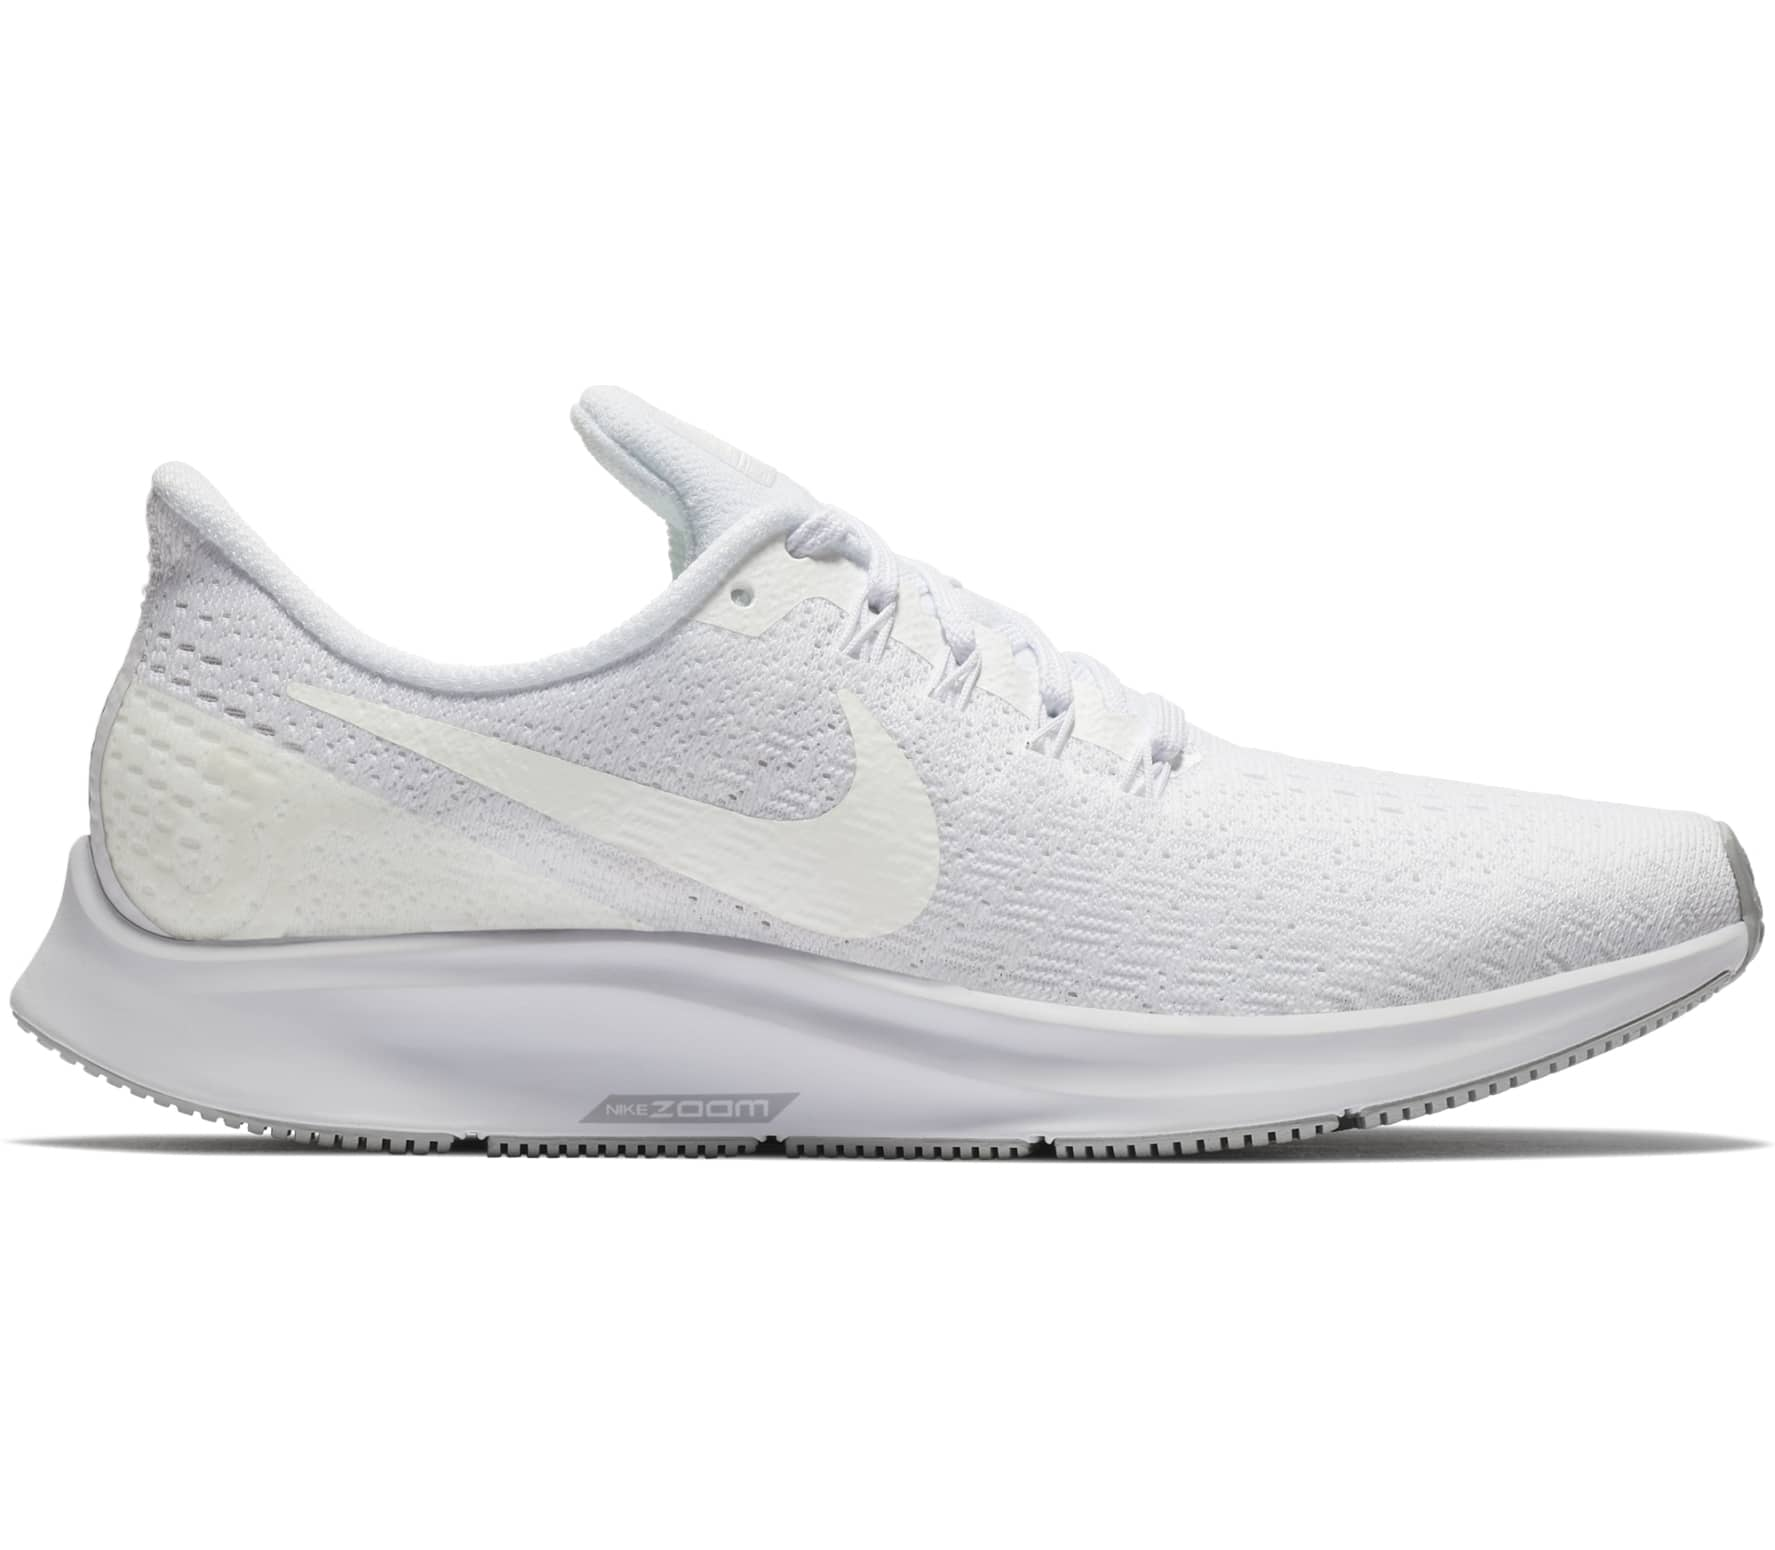 promo code a0340 c2b74 Nike - Air Zoom Pegasus 35 women s running shoes (white)